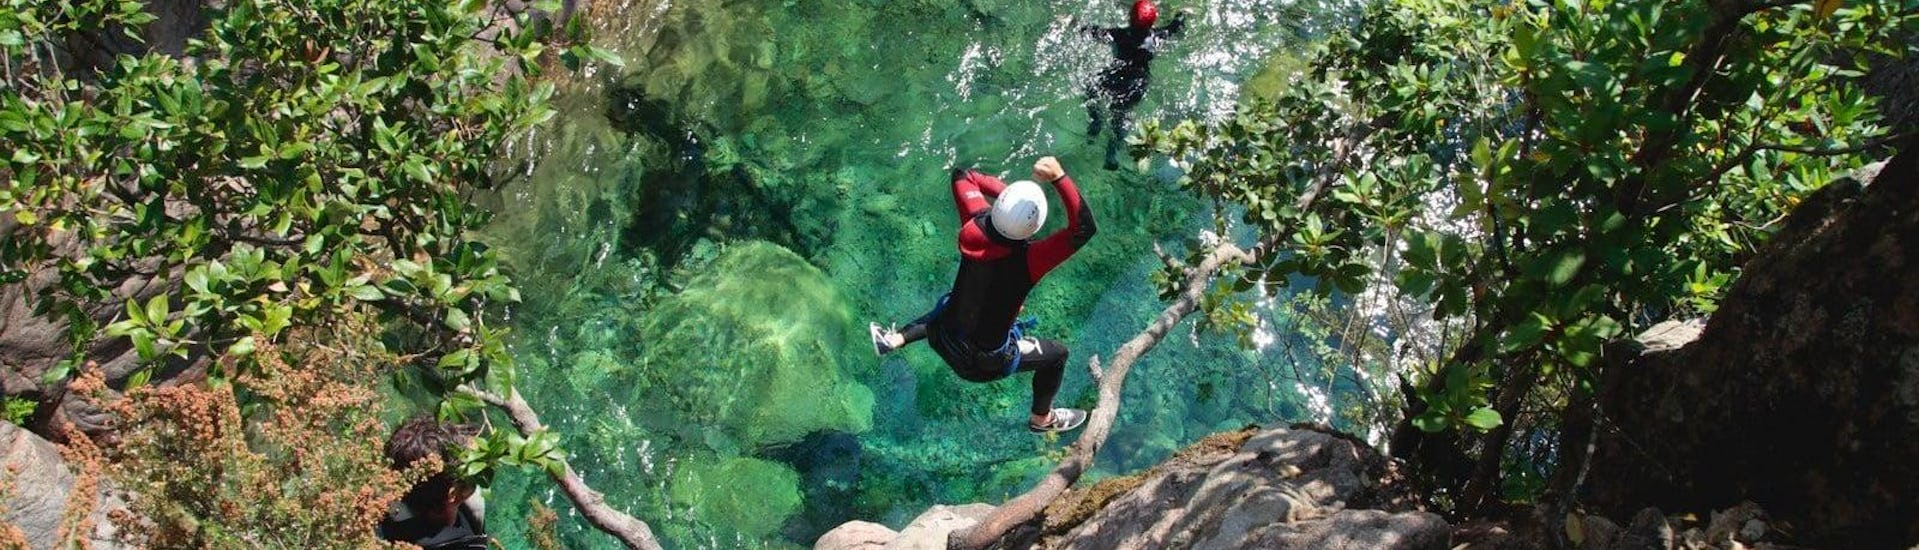 """A participant of Canyoning """"Discovery"""" - Canyon de Pulischellu is jumping into an emerald green natural pool under the supervision of a qualified canyoning guide from Acqua et Natura."""